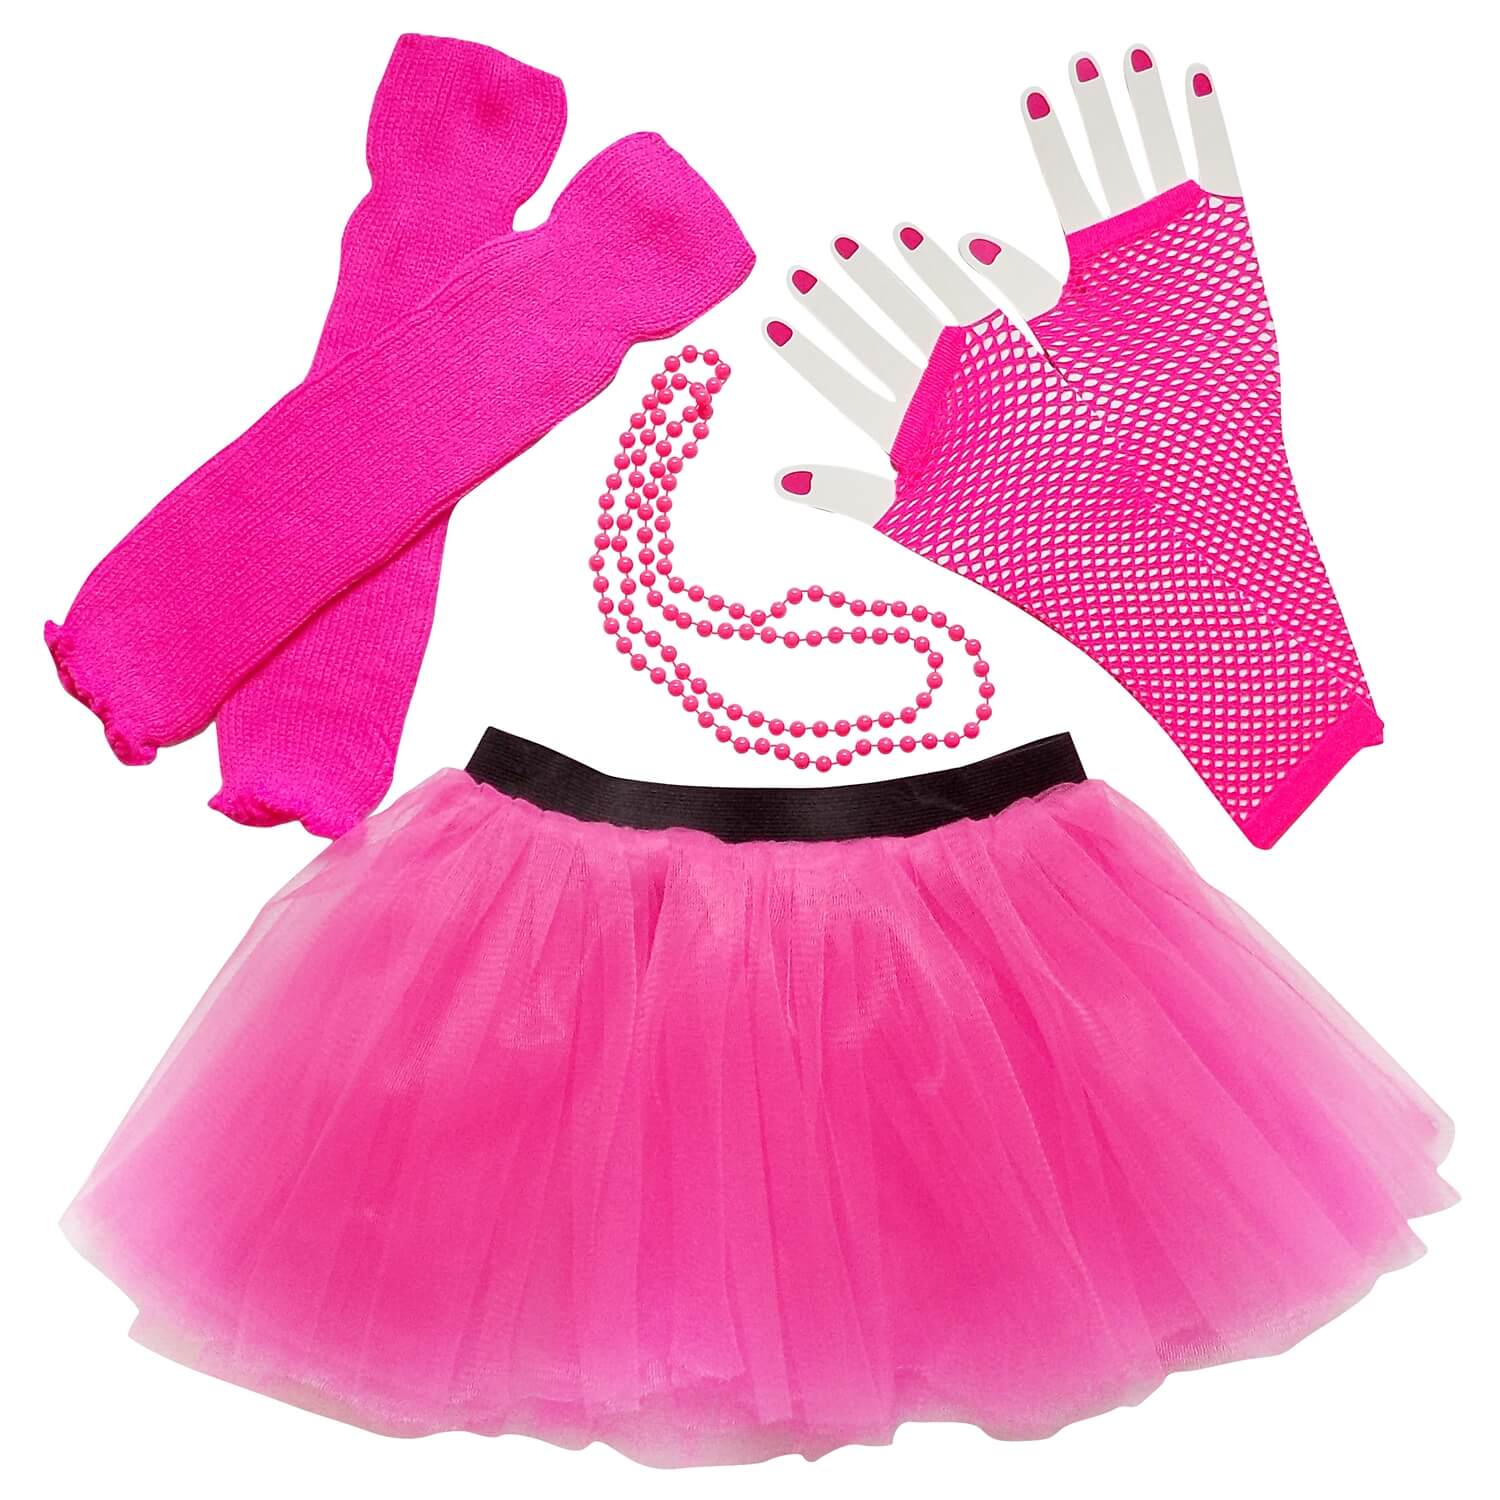 hot pink 80s party costume with tutu and leg warmers